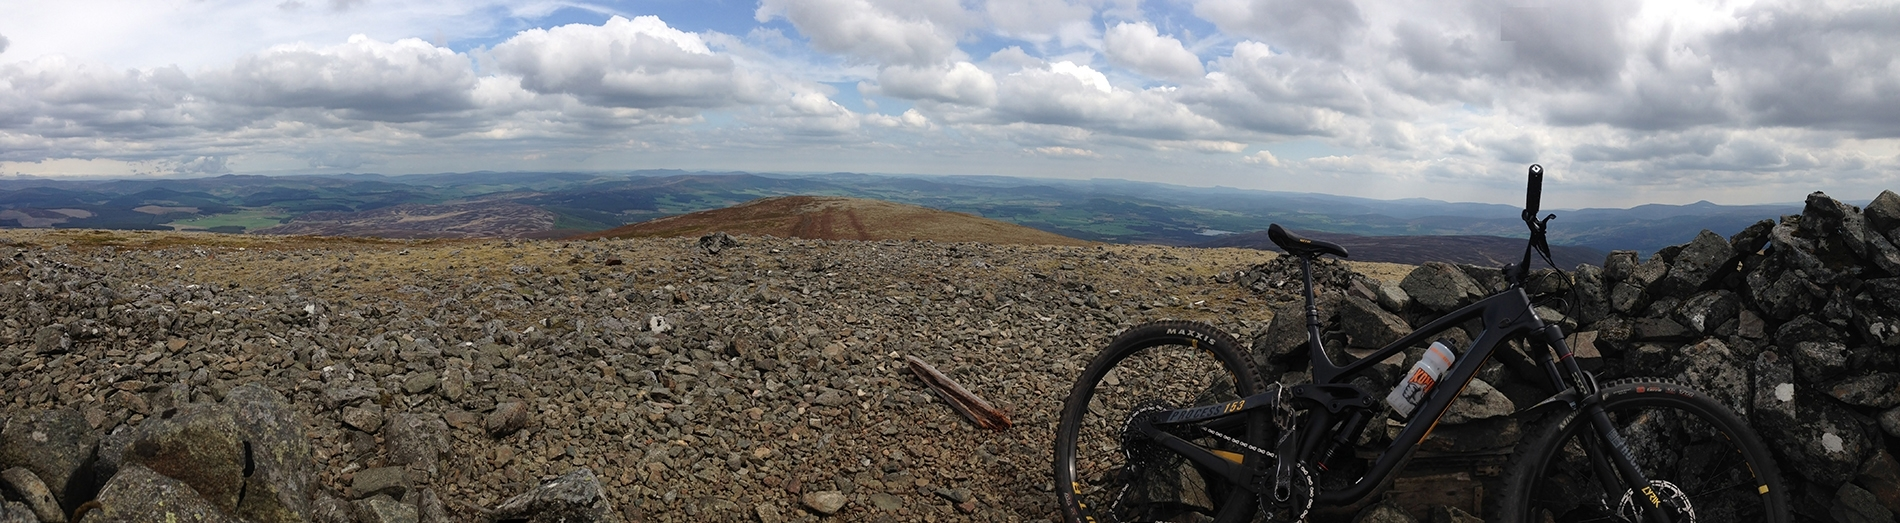 Guided Ride - Views from top of Morven - Aberdeenshire